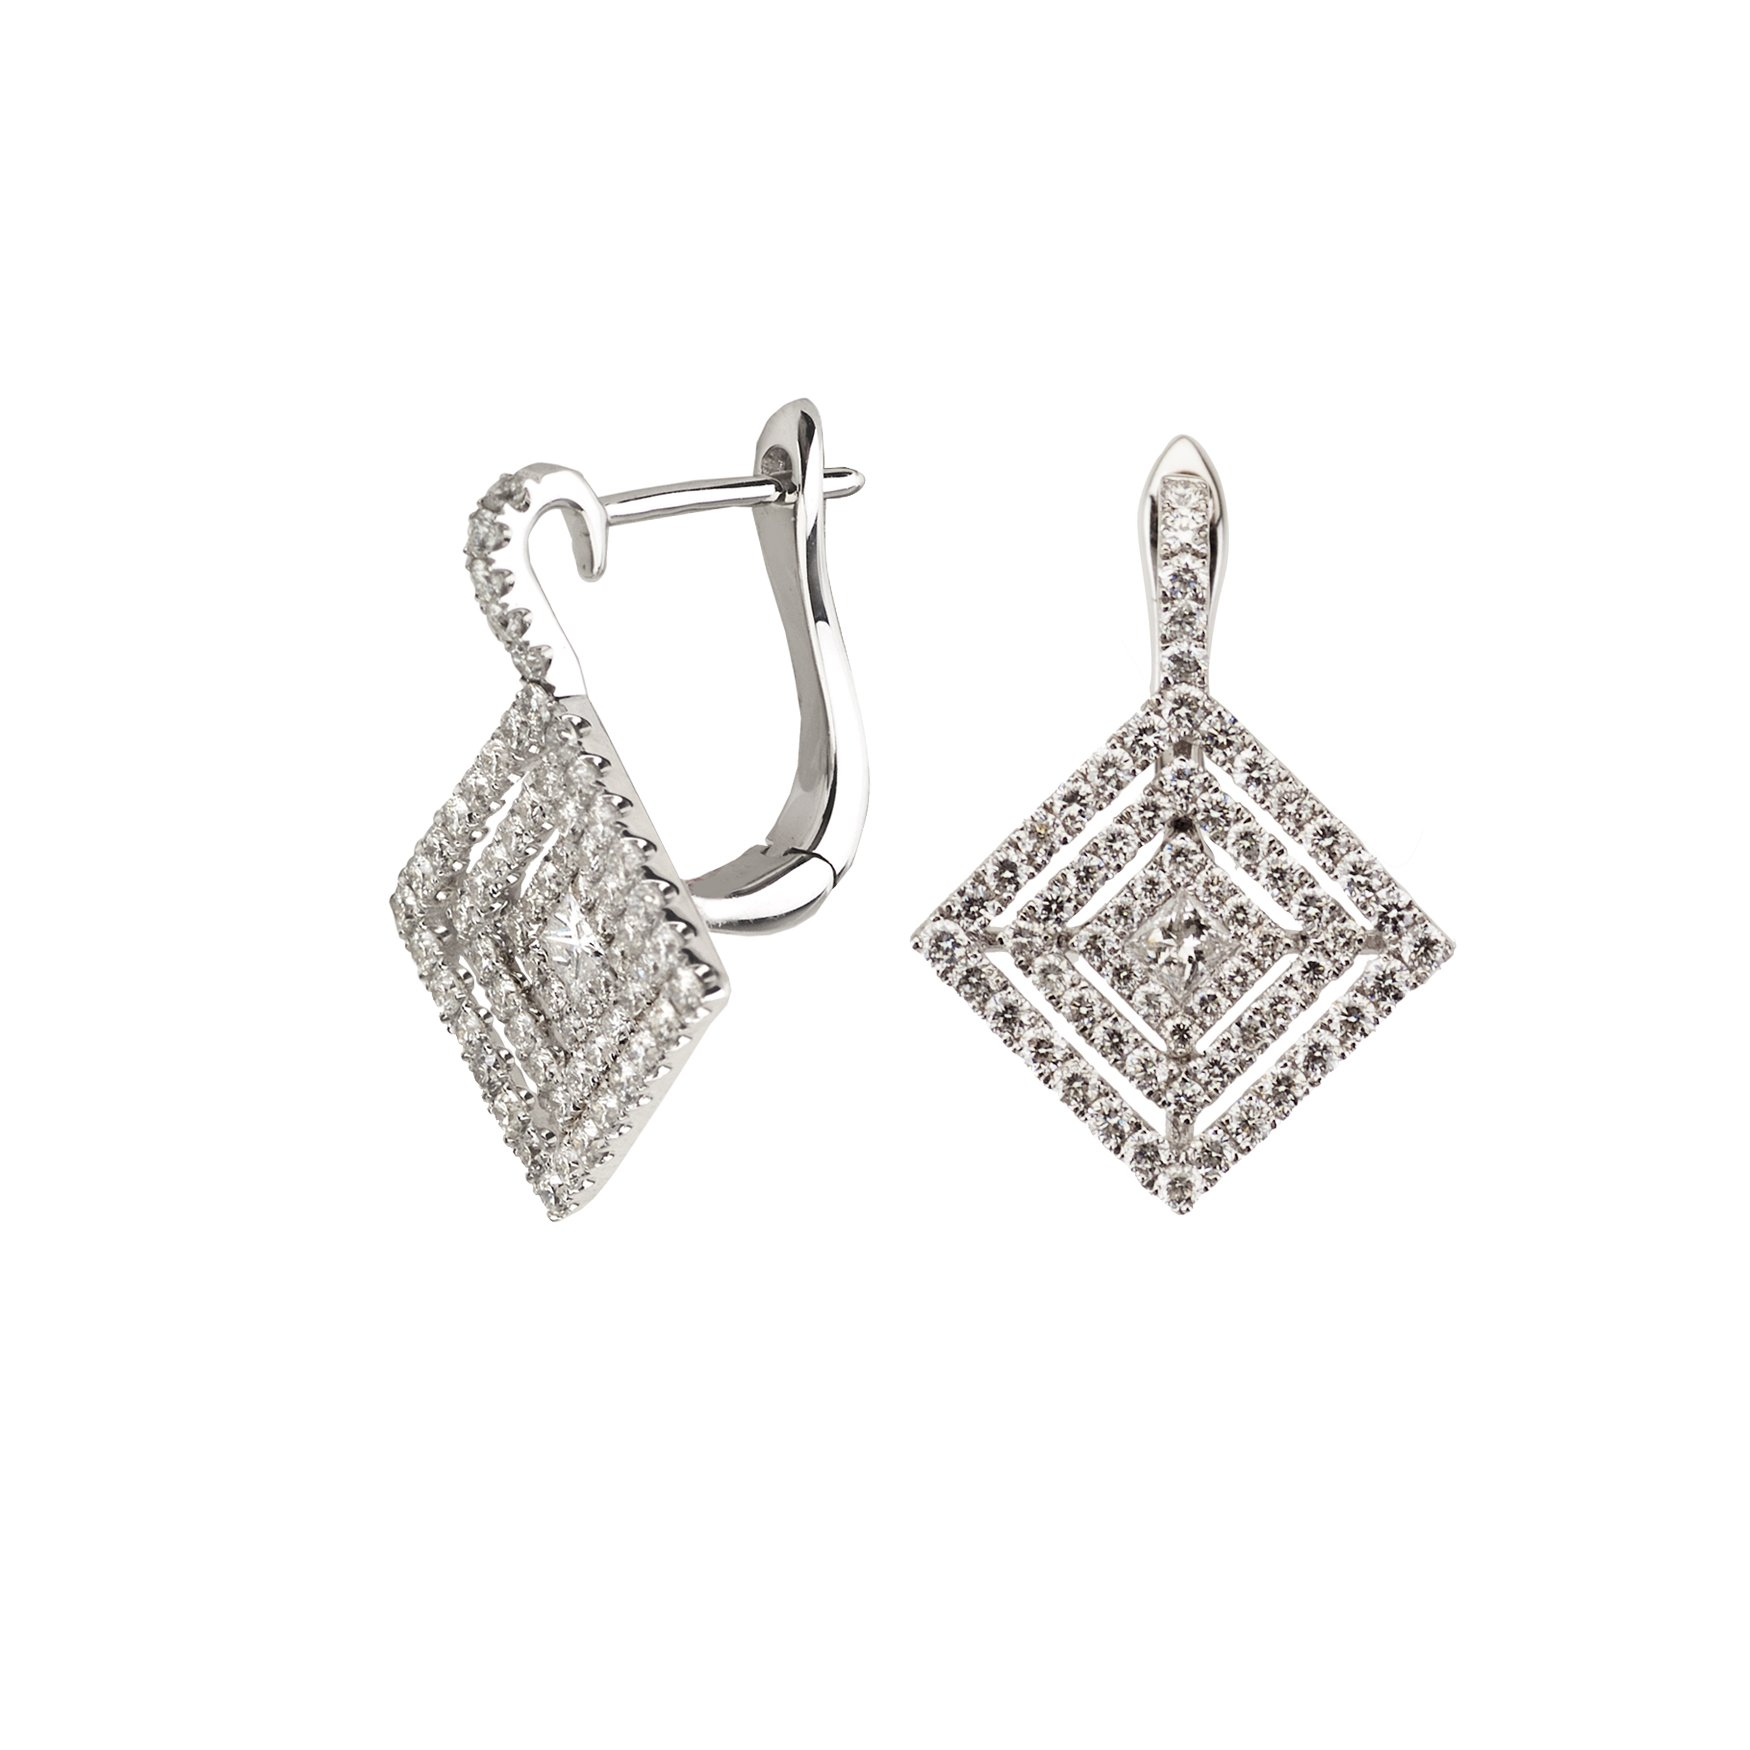 18k White Gold Square Diamond Earring with 1.08 Cttw Diamonds G-H Color VS2-SI1 Clarity